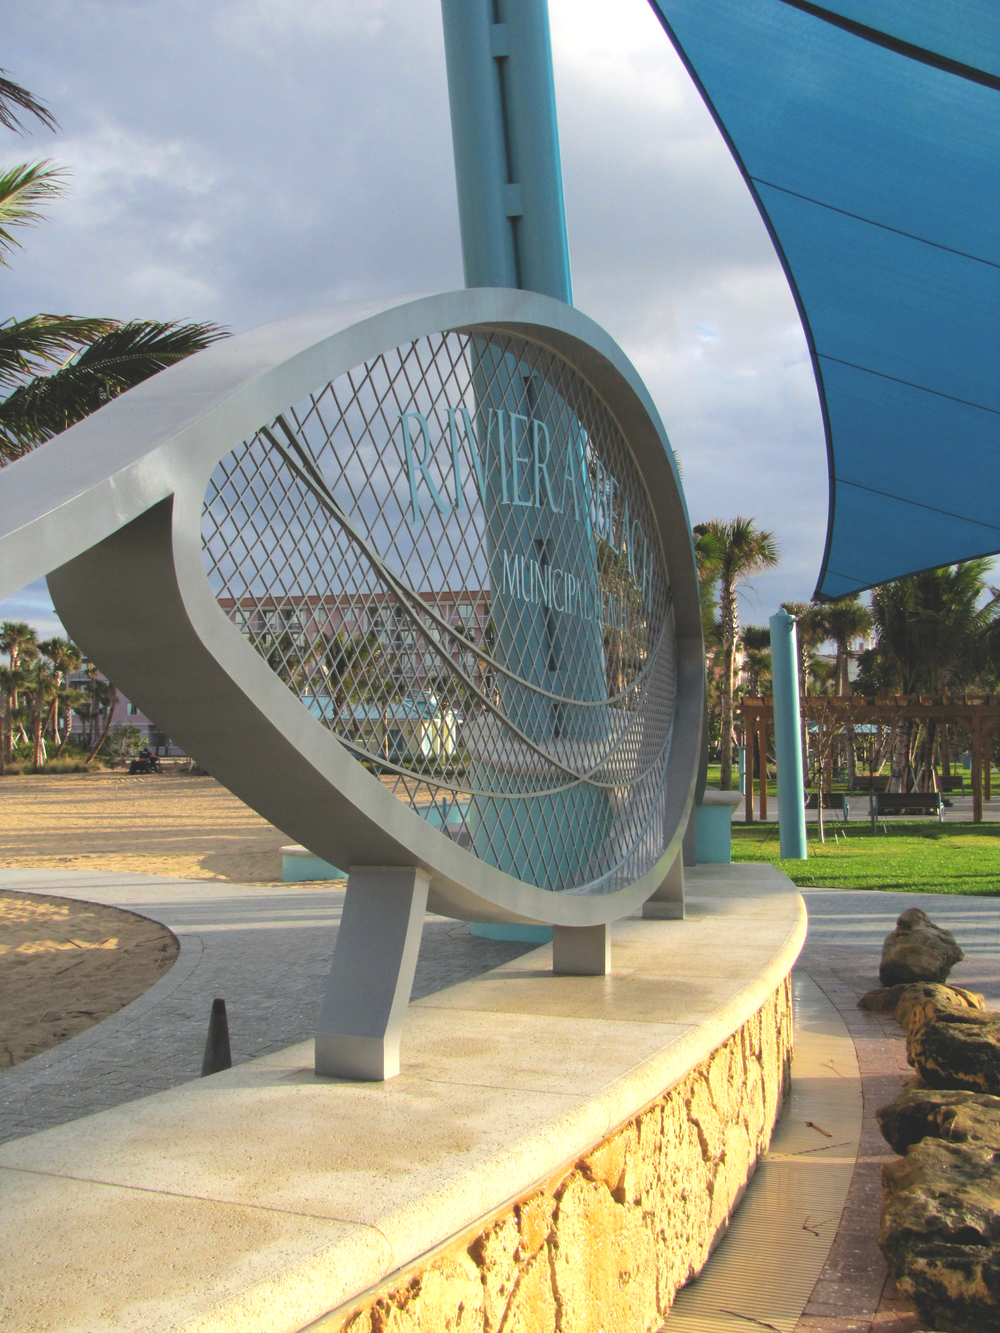 City of Riviera Beach Municipal Beach Park Ocean Mall Concrete Cap and CapRock Water feature.jpg